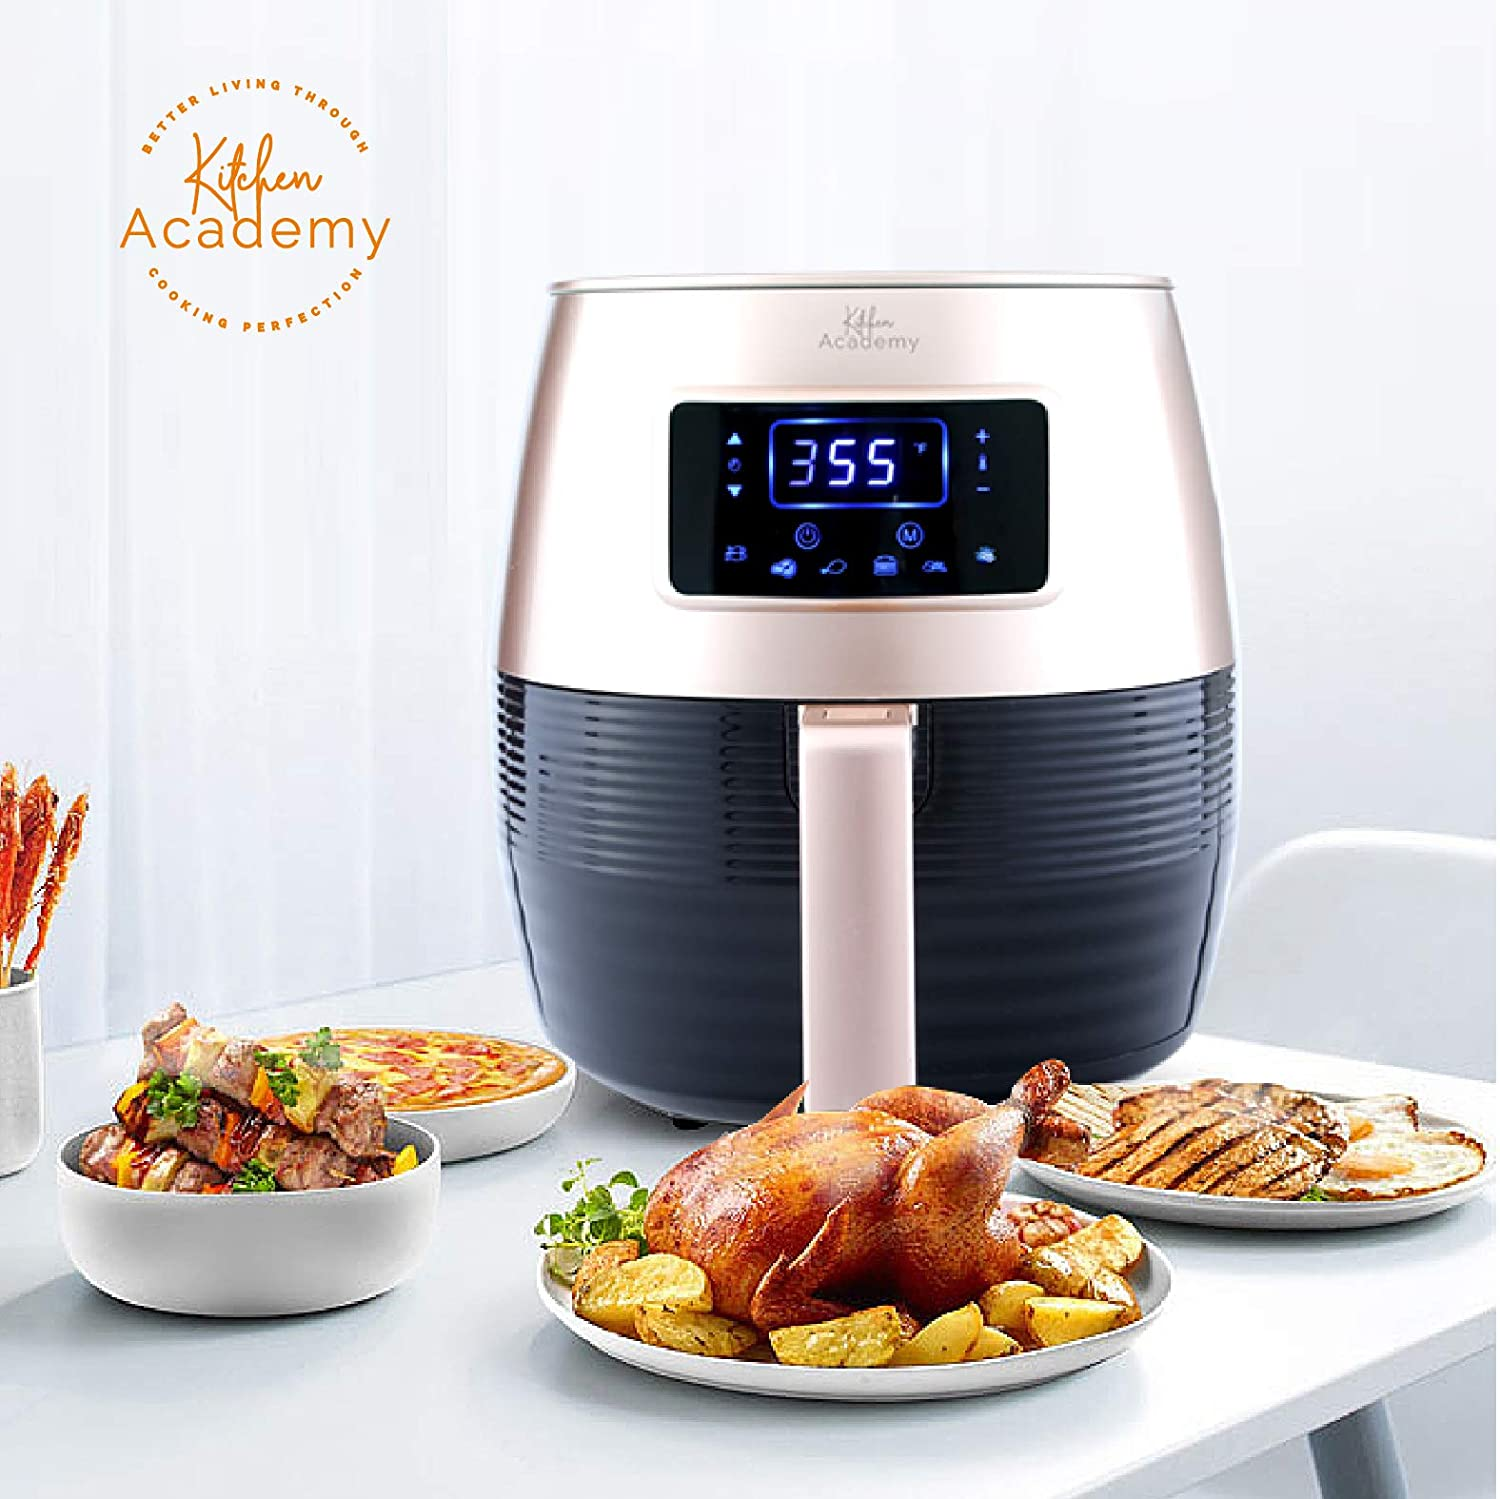 Kitchen Academy Air Fryer (50 Recipes), 5.8 Qt Electric Hot Air Fryers XL Oven Oilless Cooker, 7 Cooking Preset, LED Digital Touchscreen,Nonstick Basket,1 - Year Warranty,ETL/FDA Listed,1700W - Black Gold